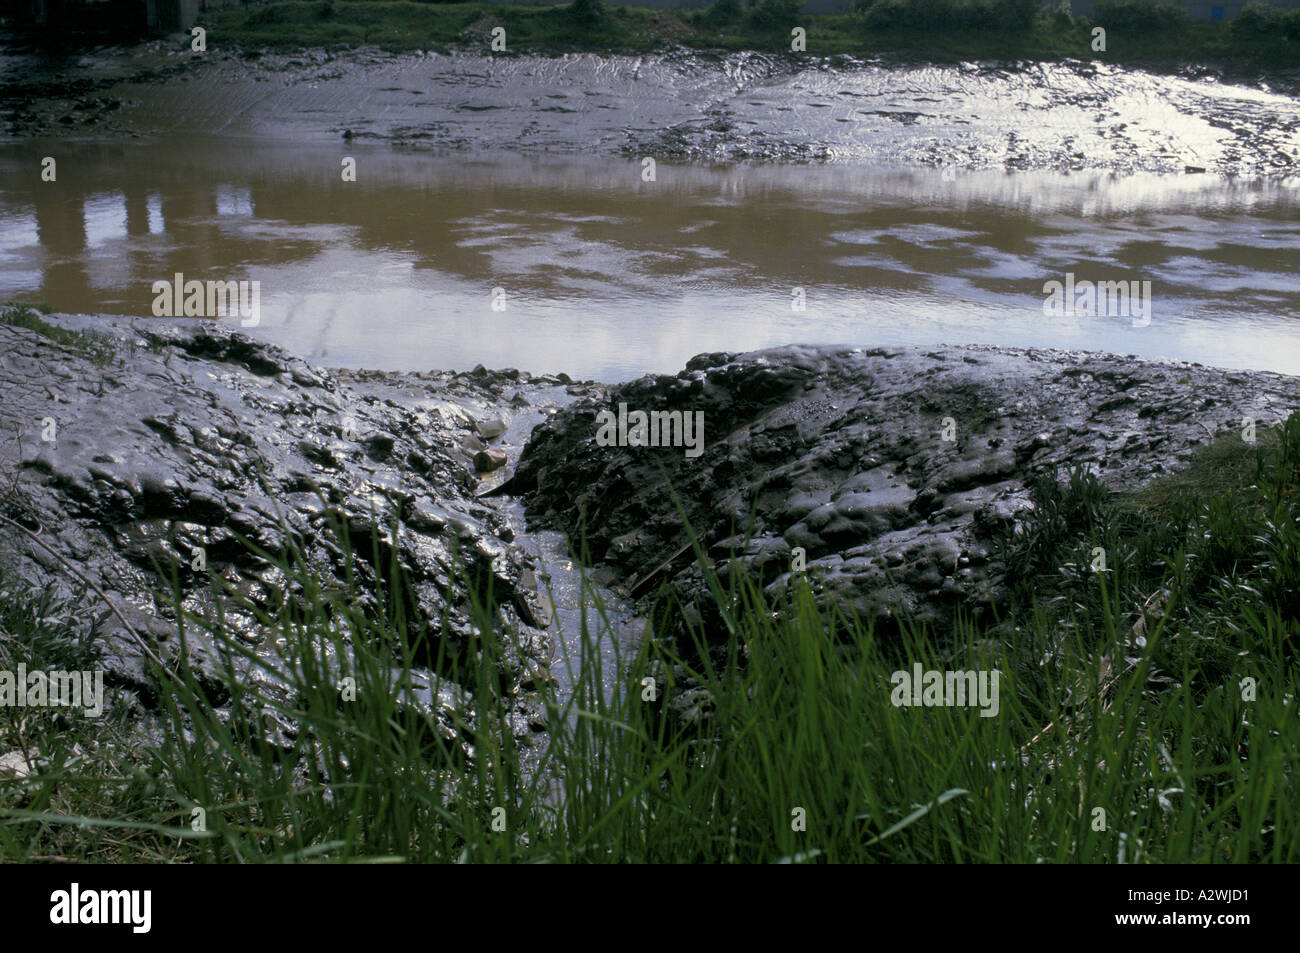 polluted river bank, London - Stock Image